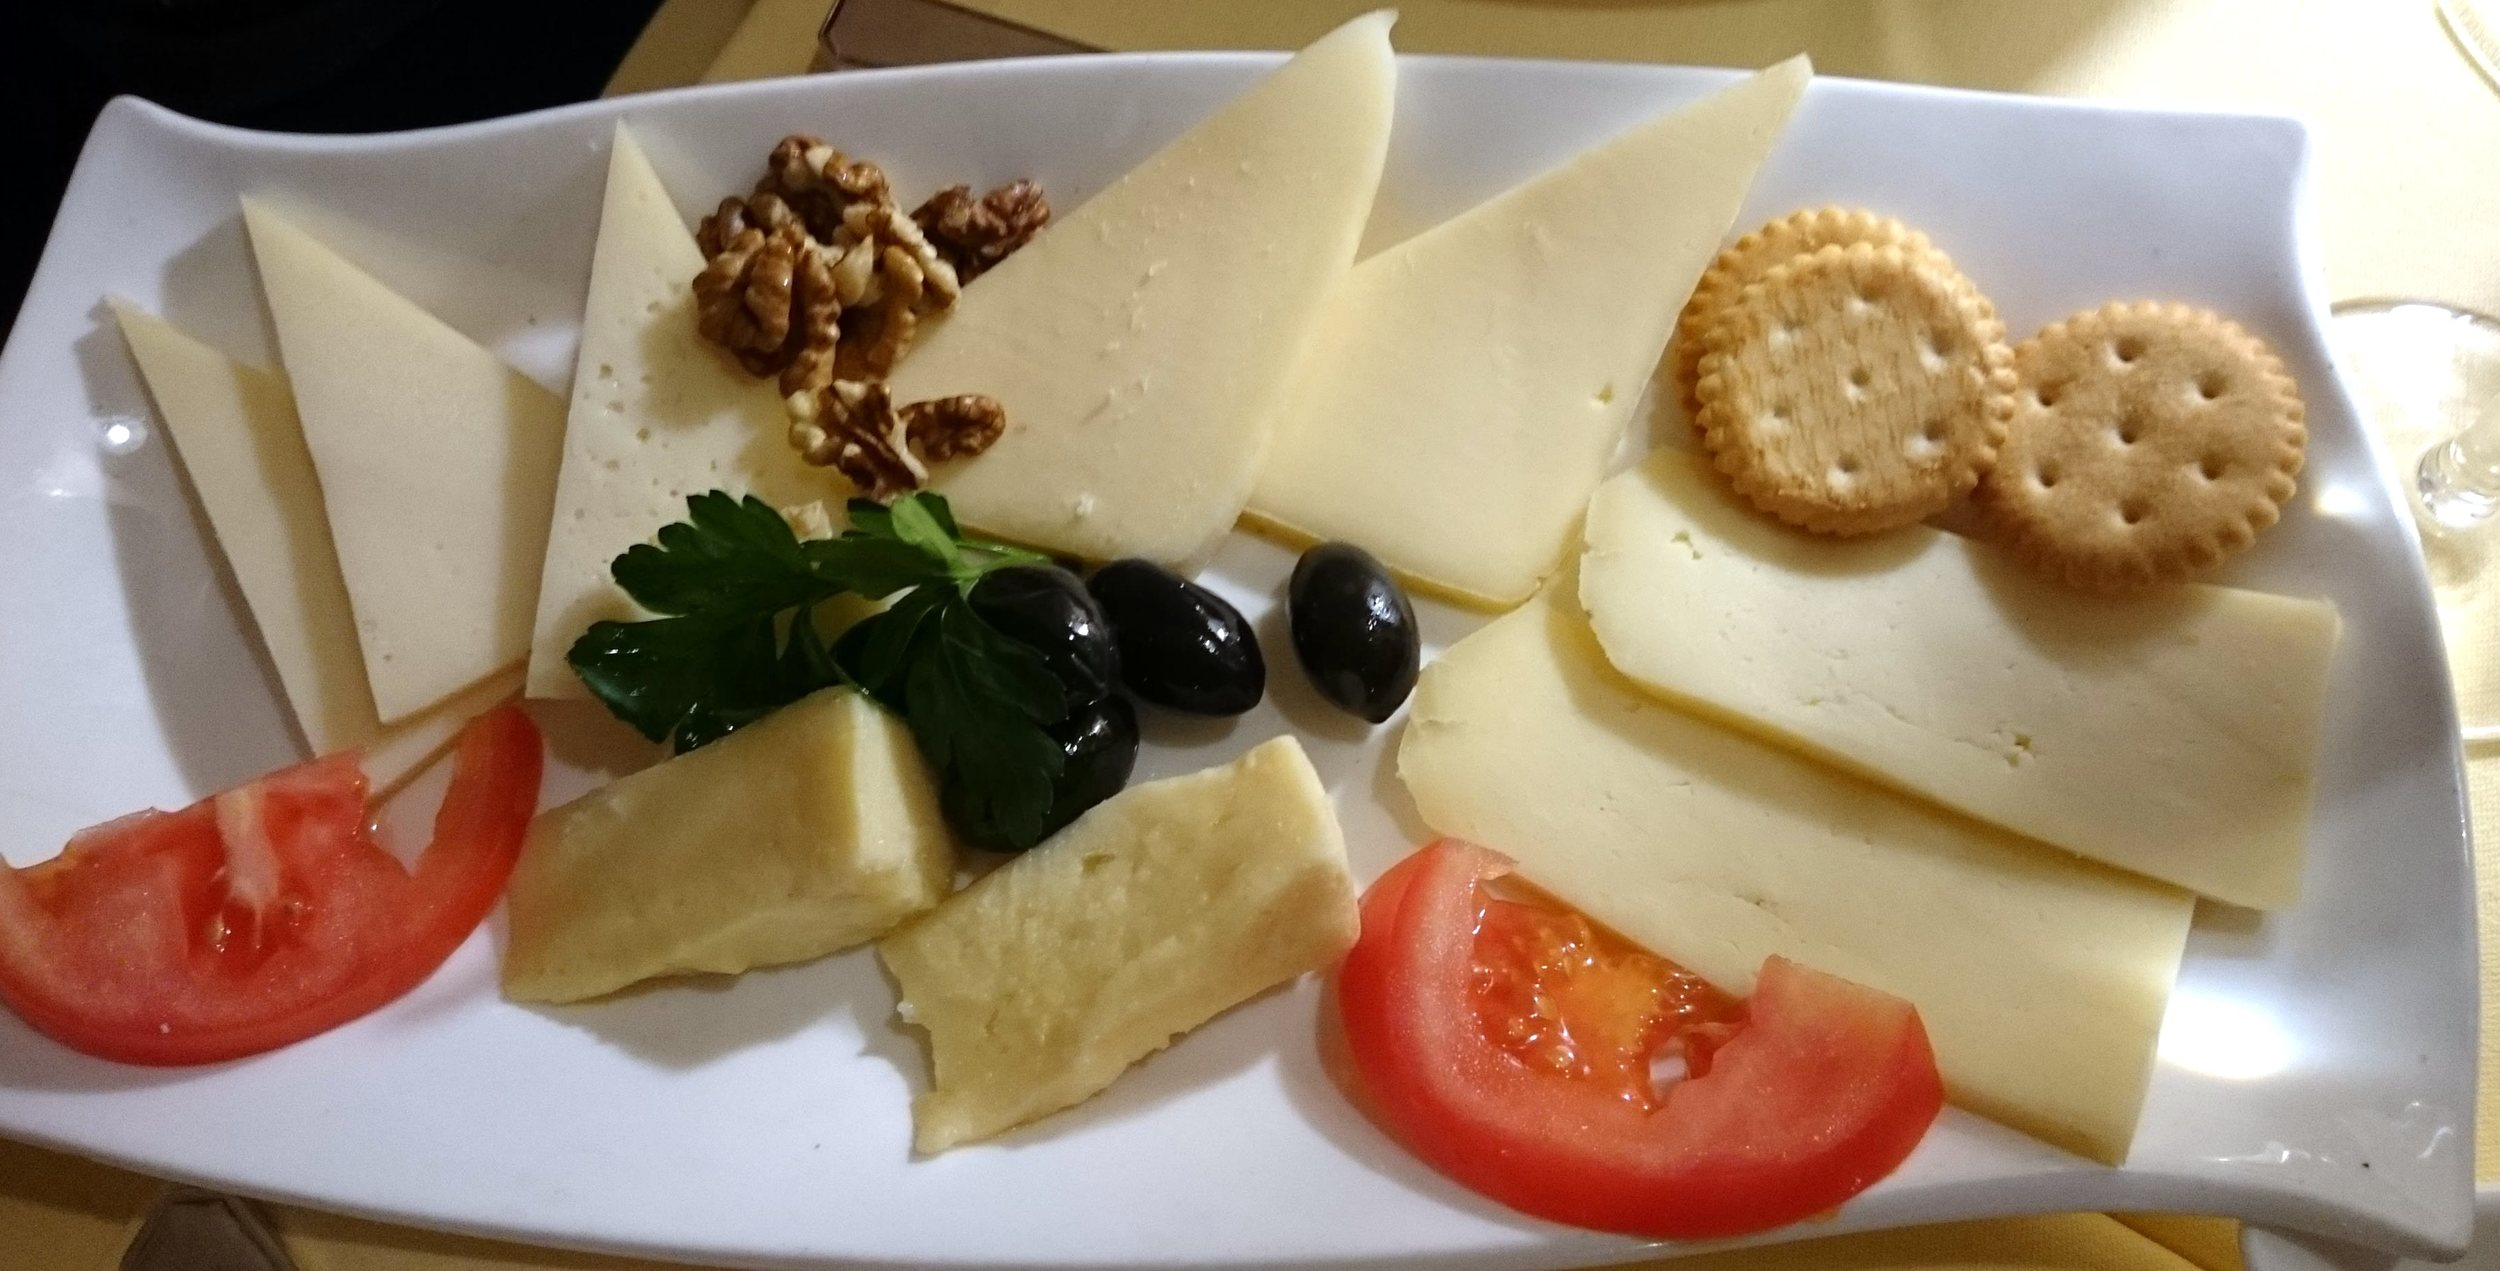 Cheese plate from Ragusa. The Pag cheese is on the far left.